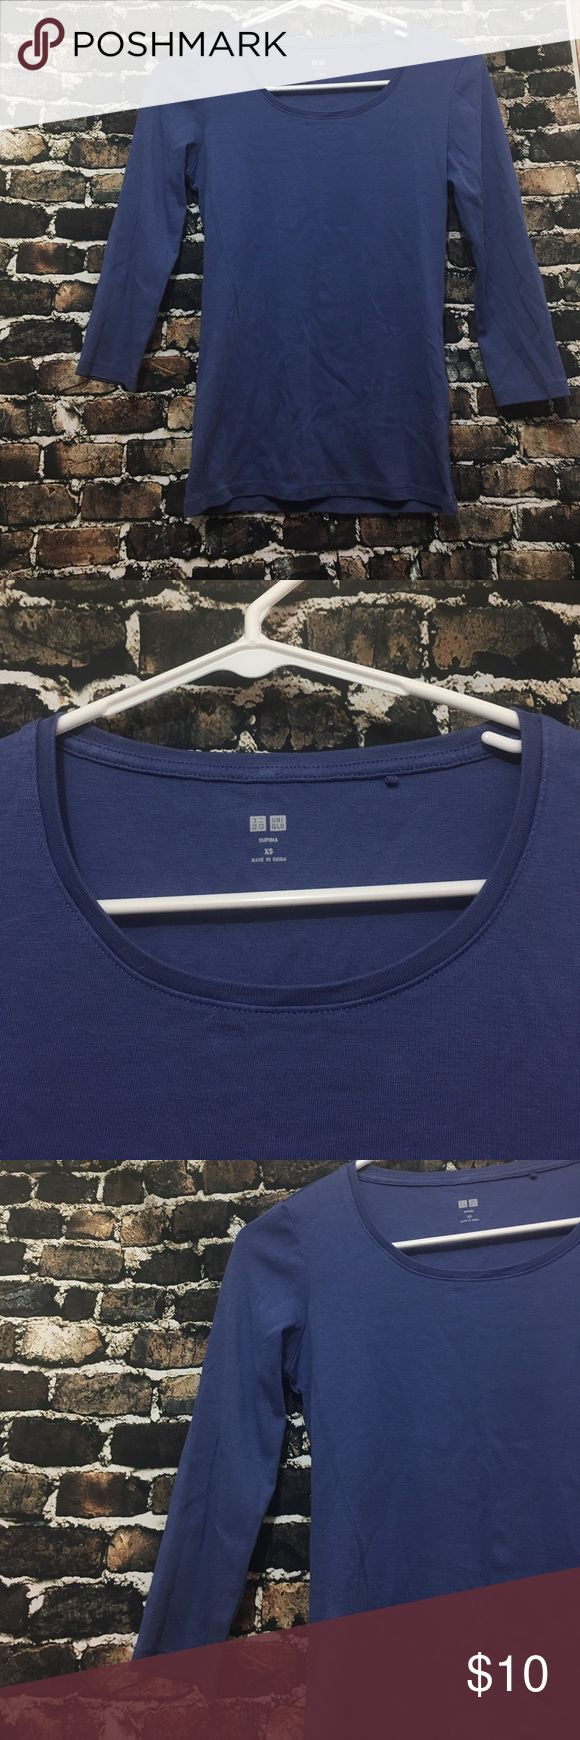 Uniqlo supima size XS top Good condition Uniqlo size XS blue color 3/4sleeve Uniqlo Tops Tees - Long Sleeve